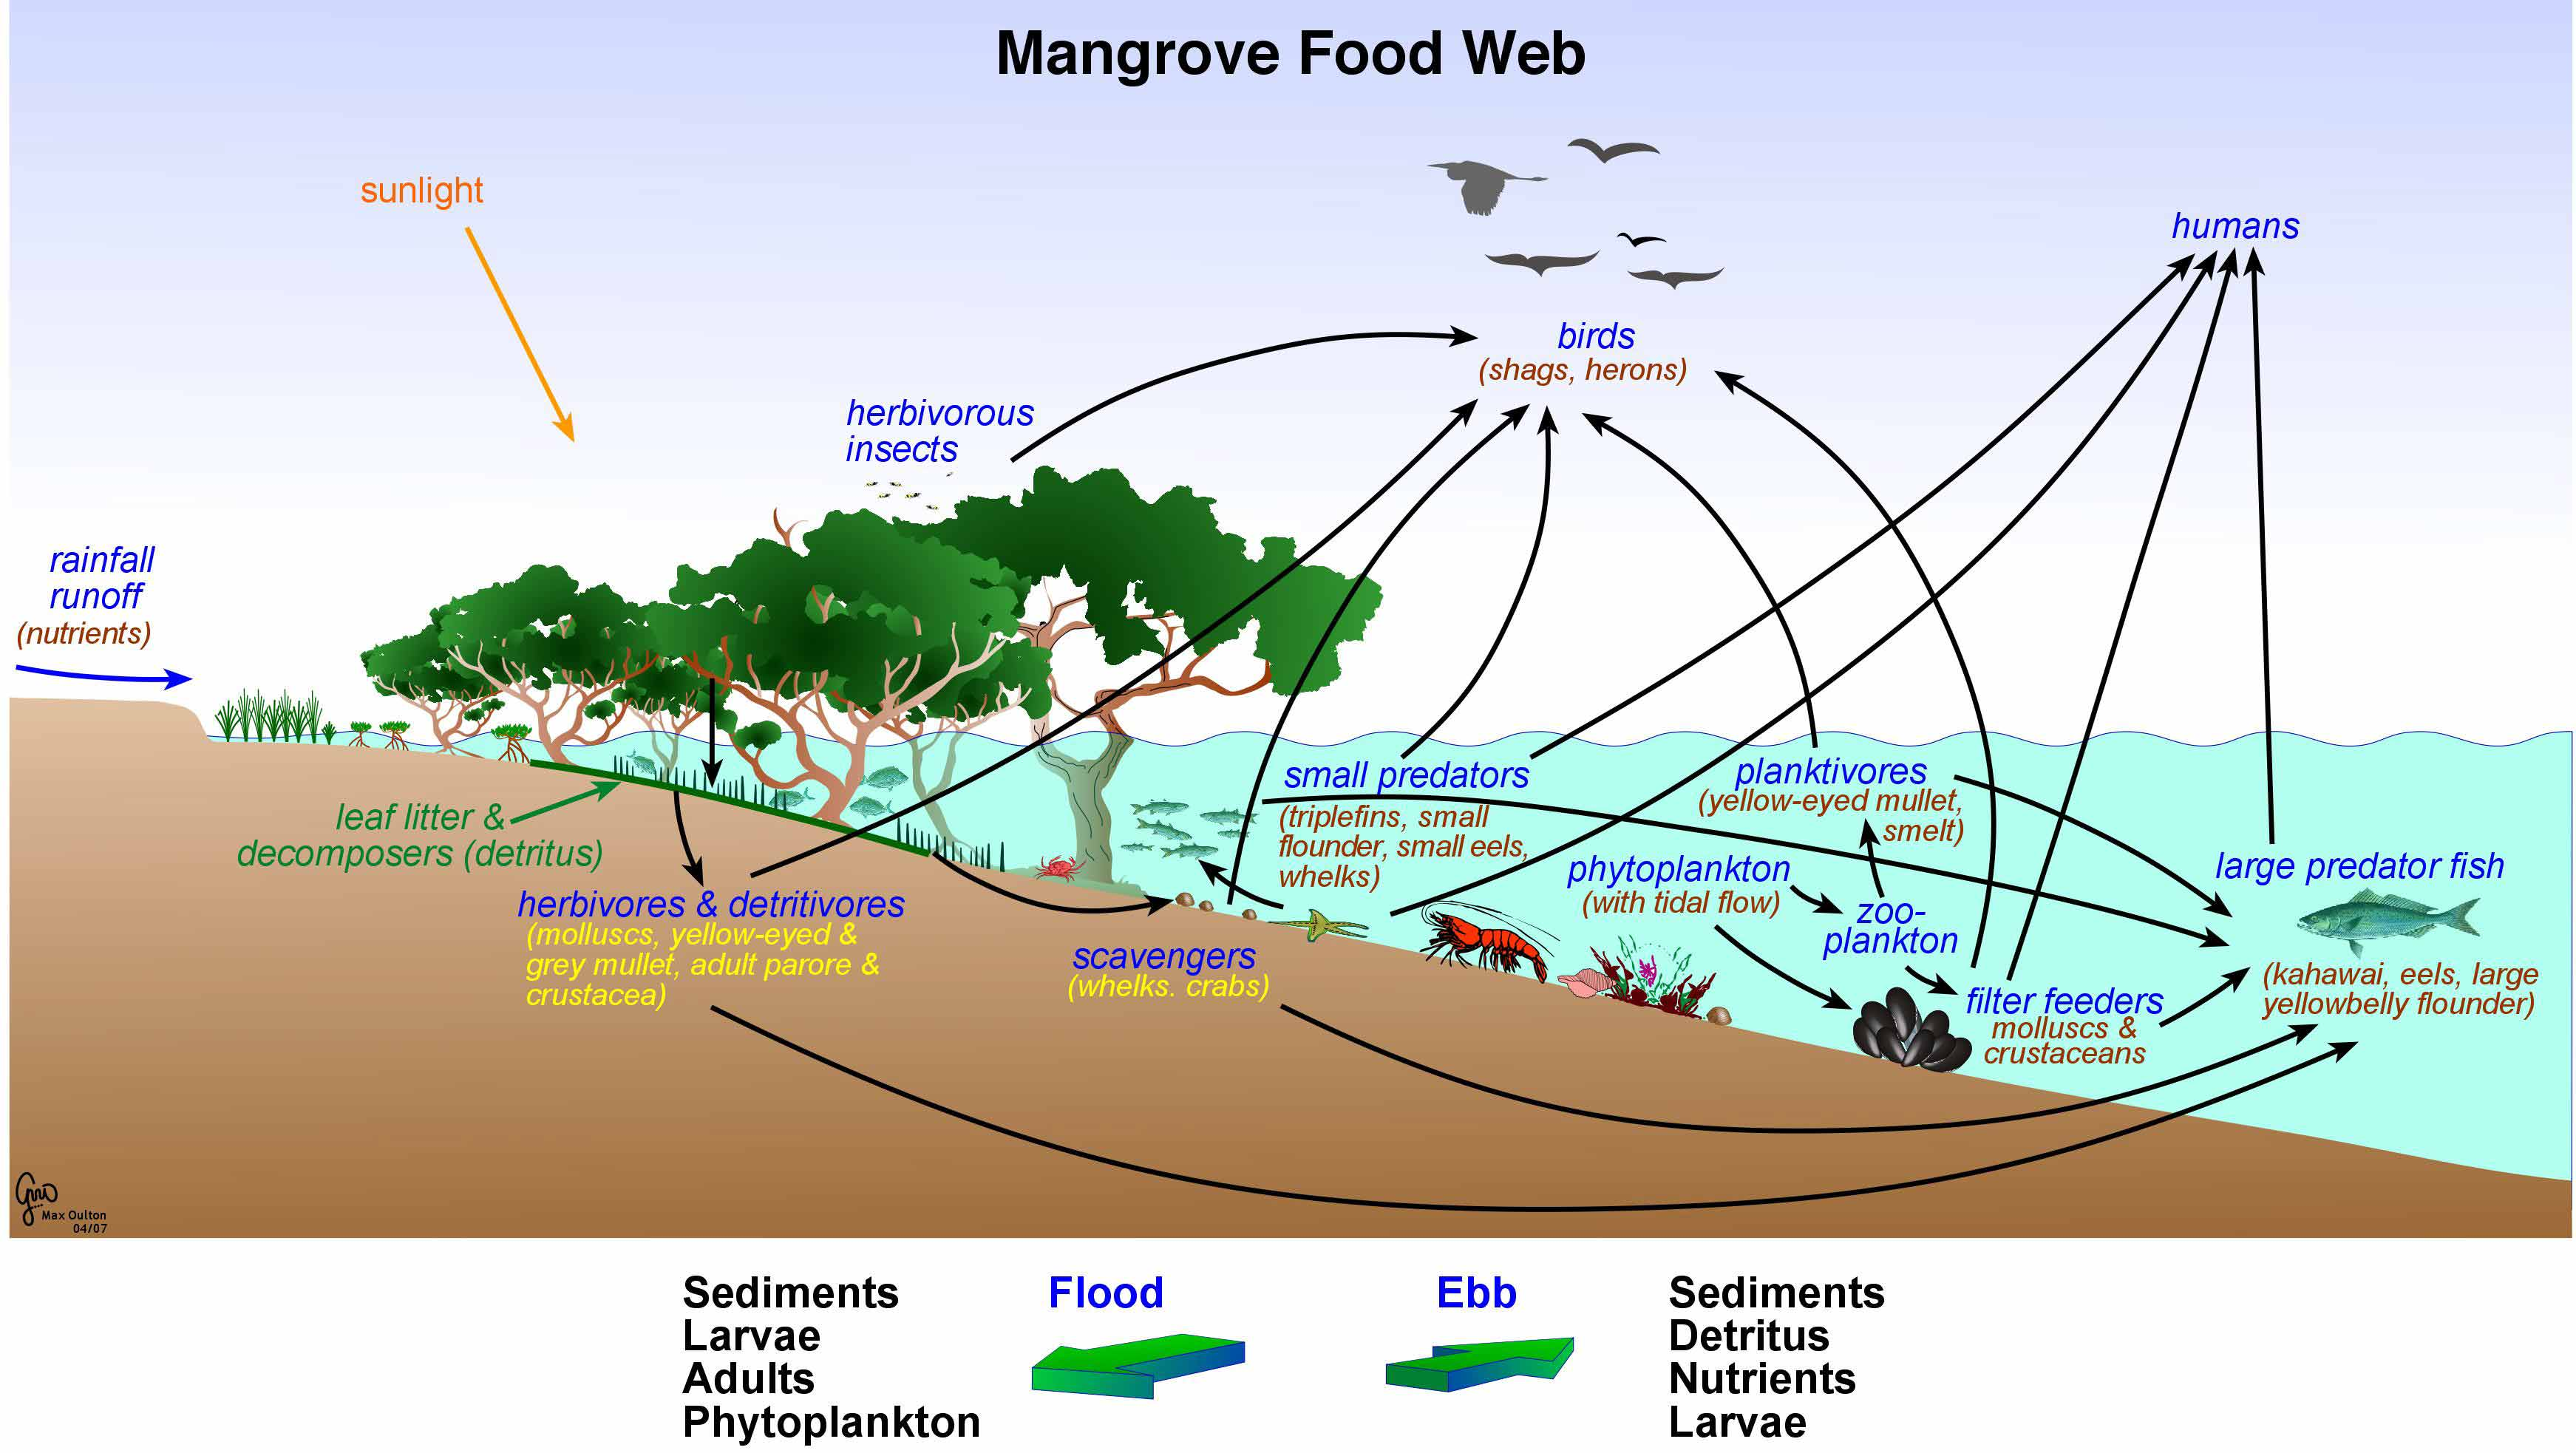 pond ecosystem diagram ford 4000 tractor ignition switch wiring mangroves and aquatic life in florida